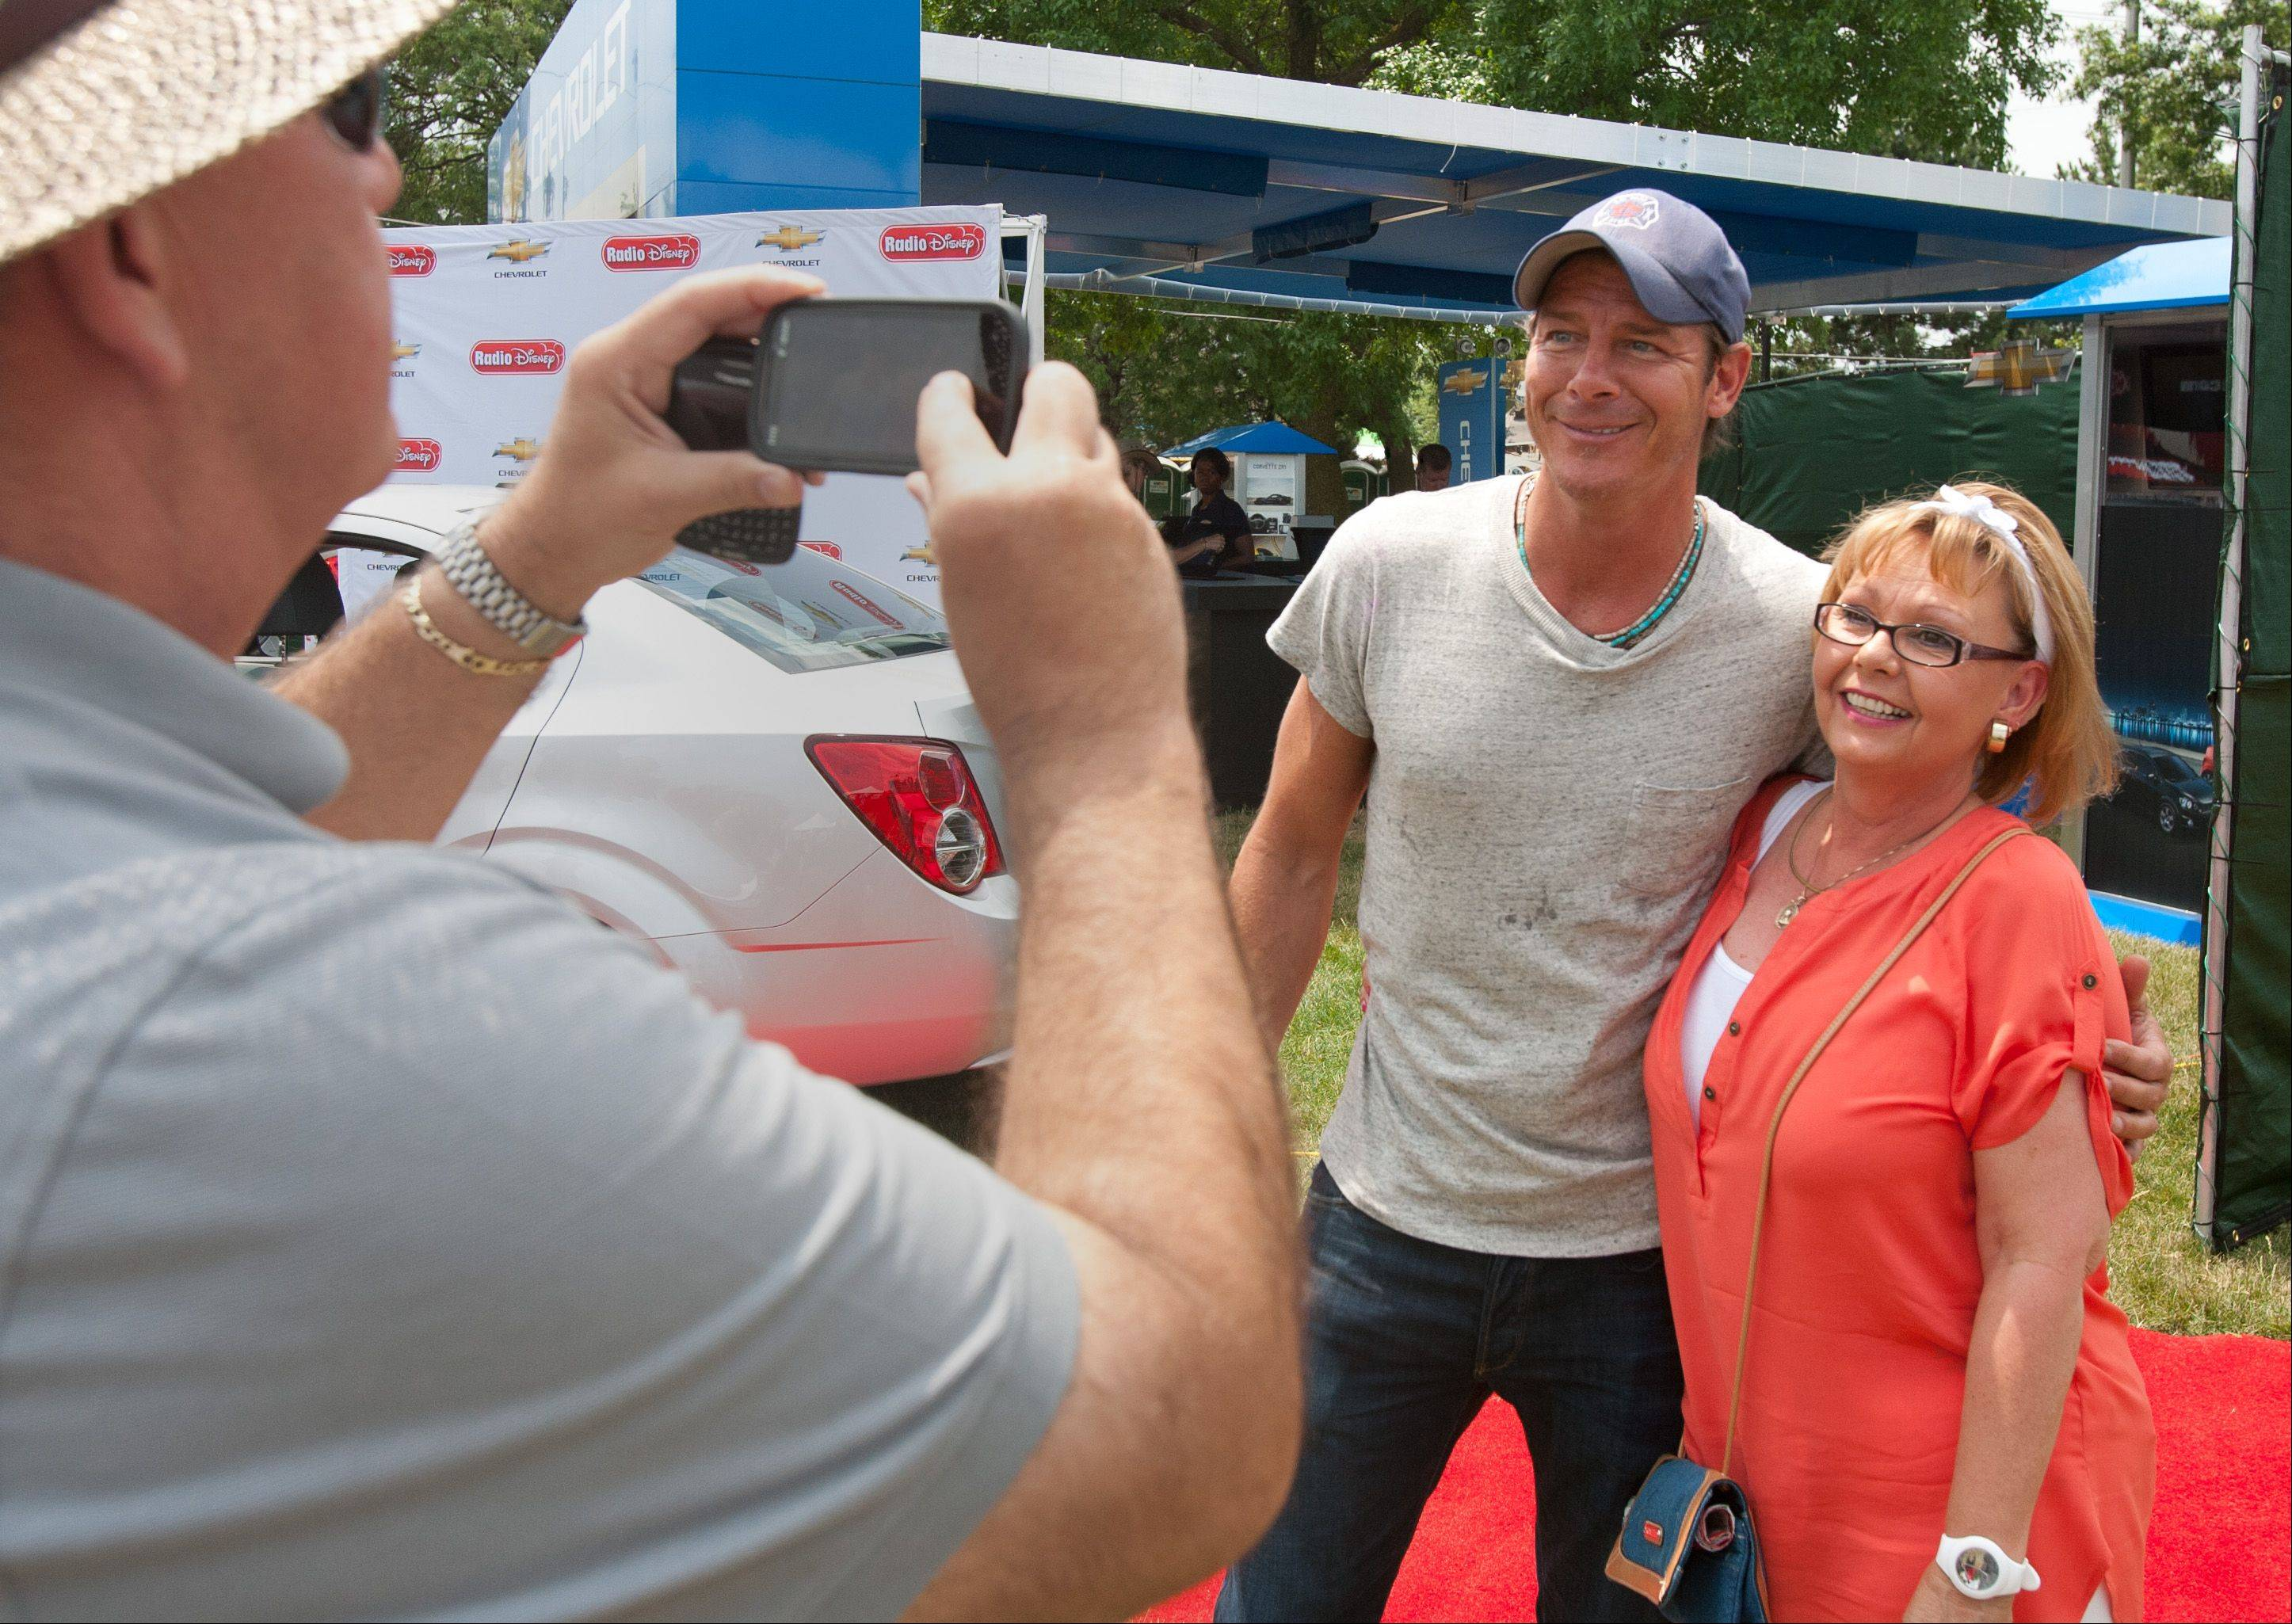 Ty Pennington grills, greets fans at Ribfest